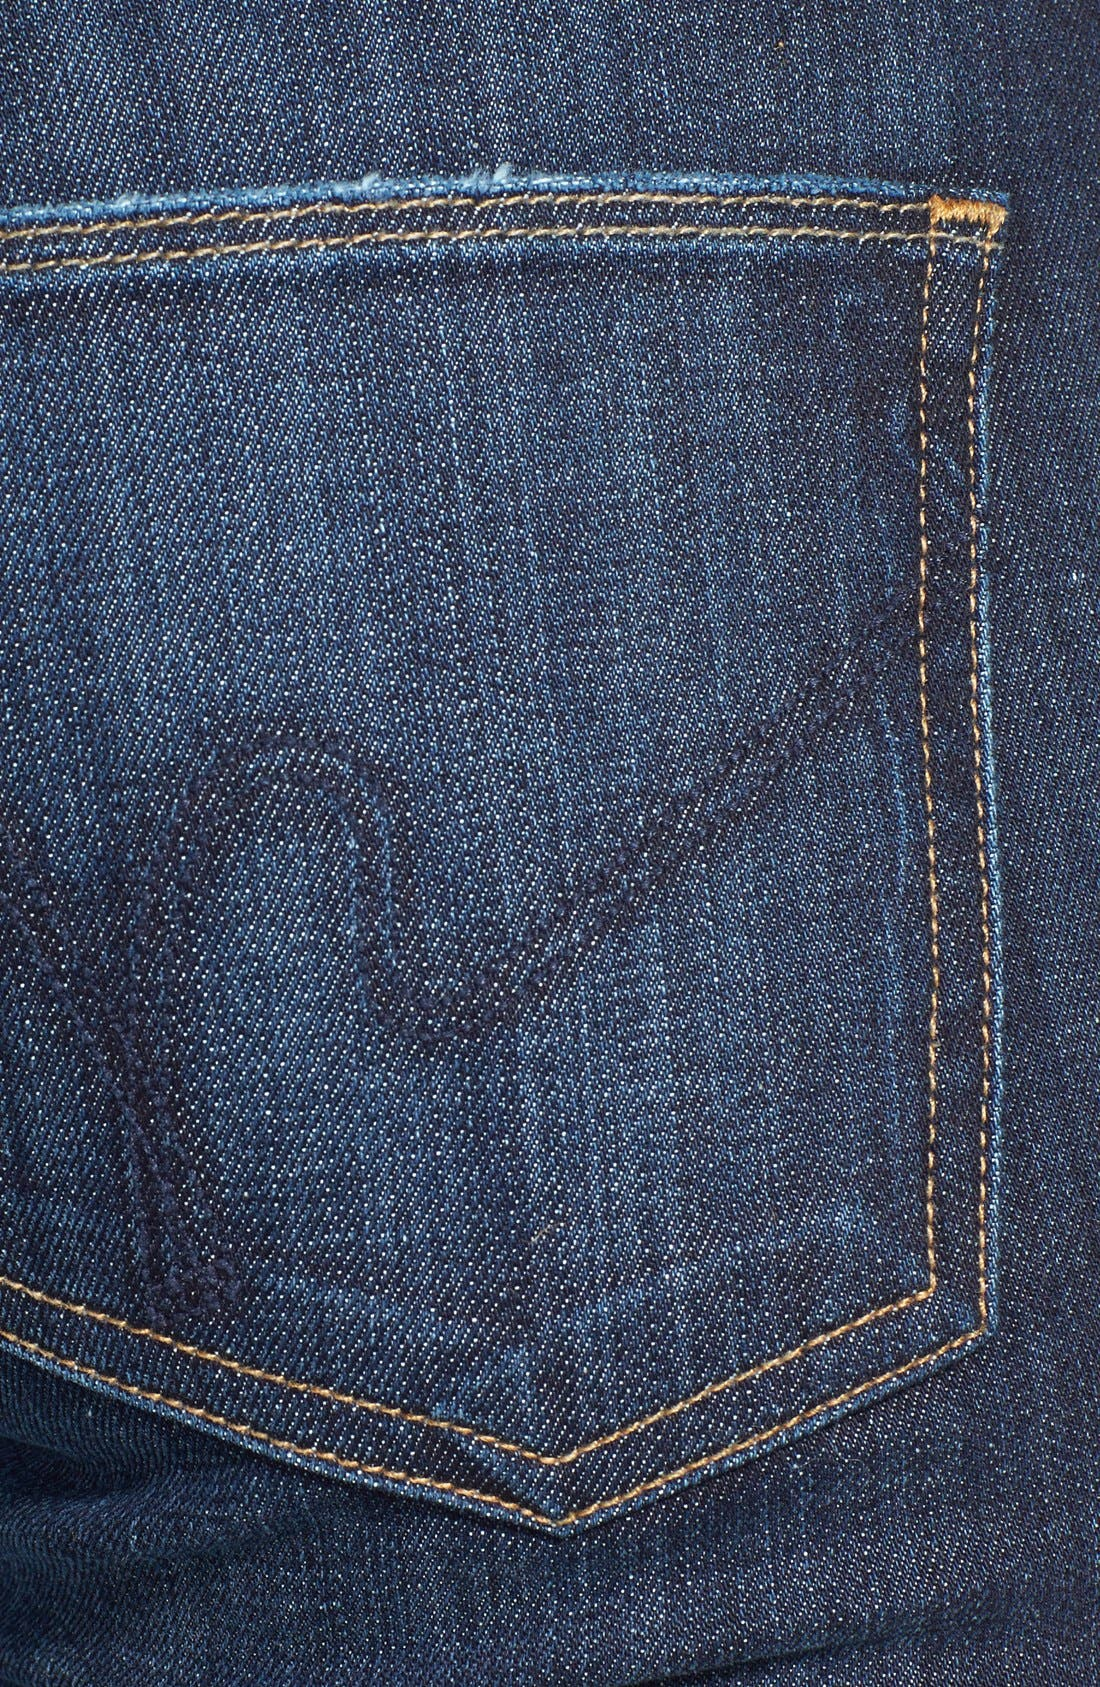 Alternate Image 3  - Citizens of Humanity 'Dita' Bootcut Stretch Jeans (New Pacific) (Petite)